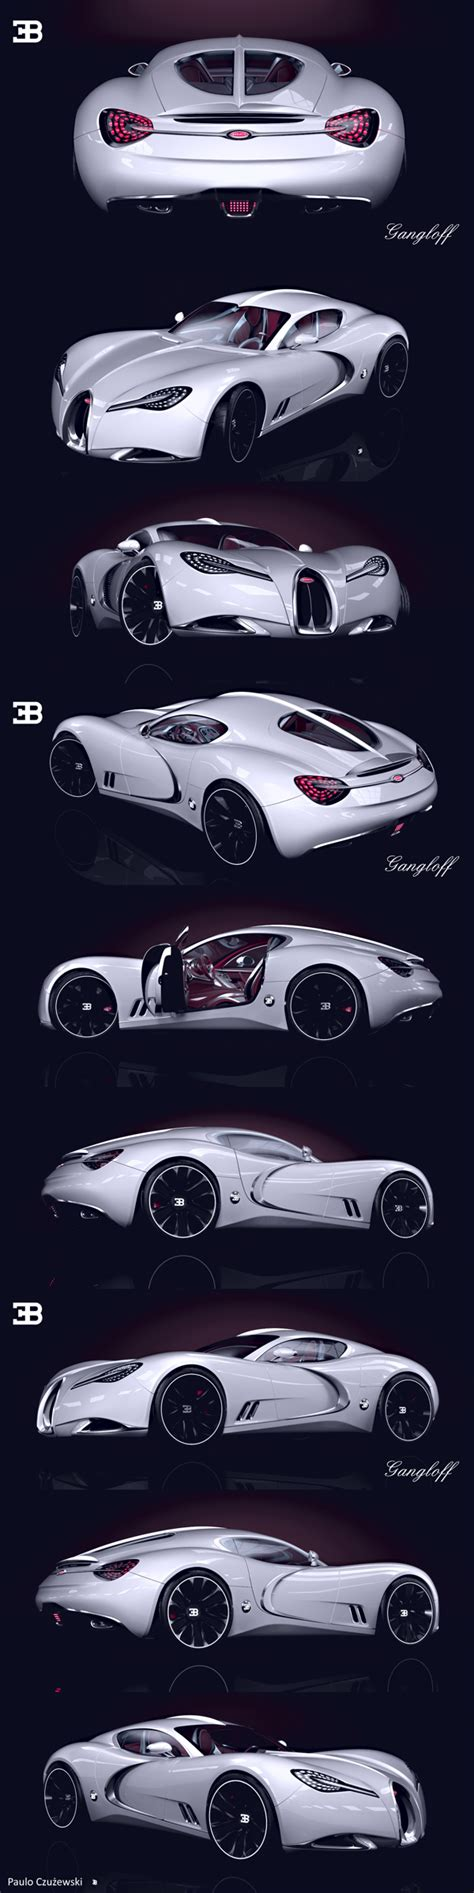 bugatti concept gangloff gangloff bugatti 57 sc by pawel czyzewski magic art world